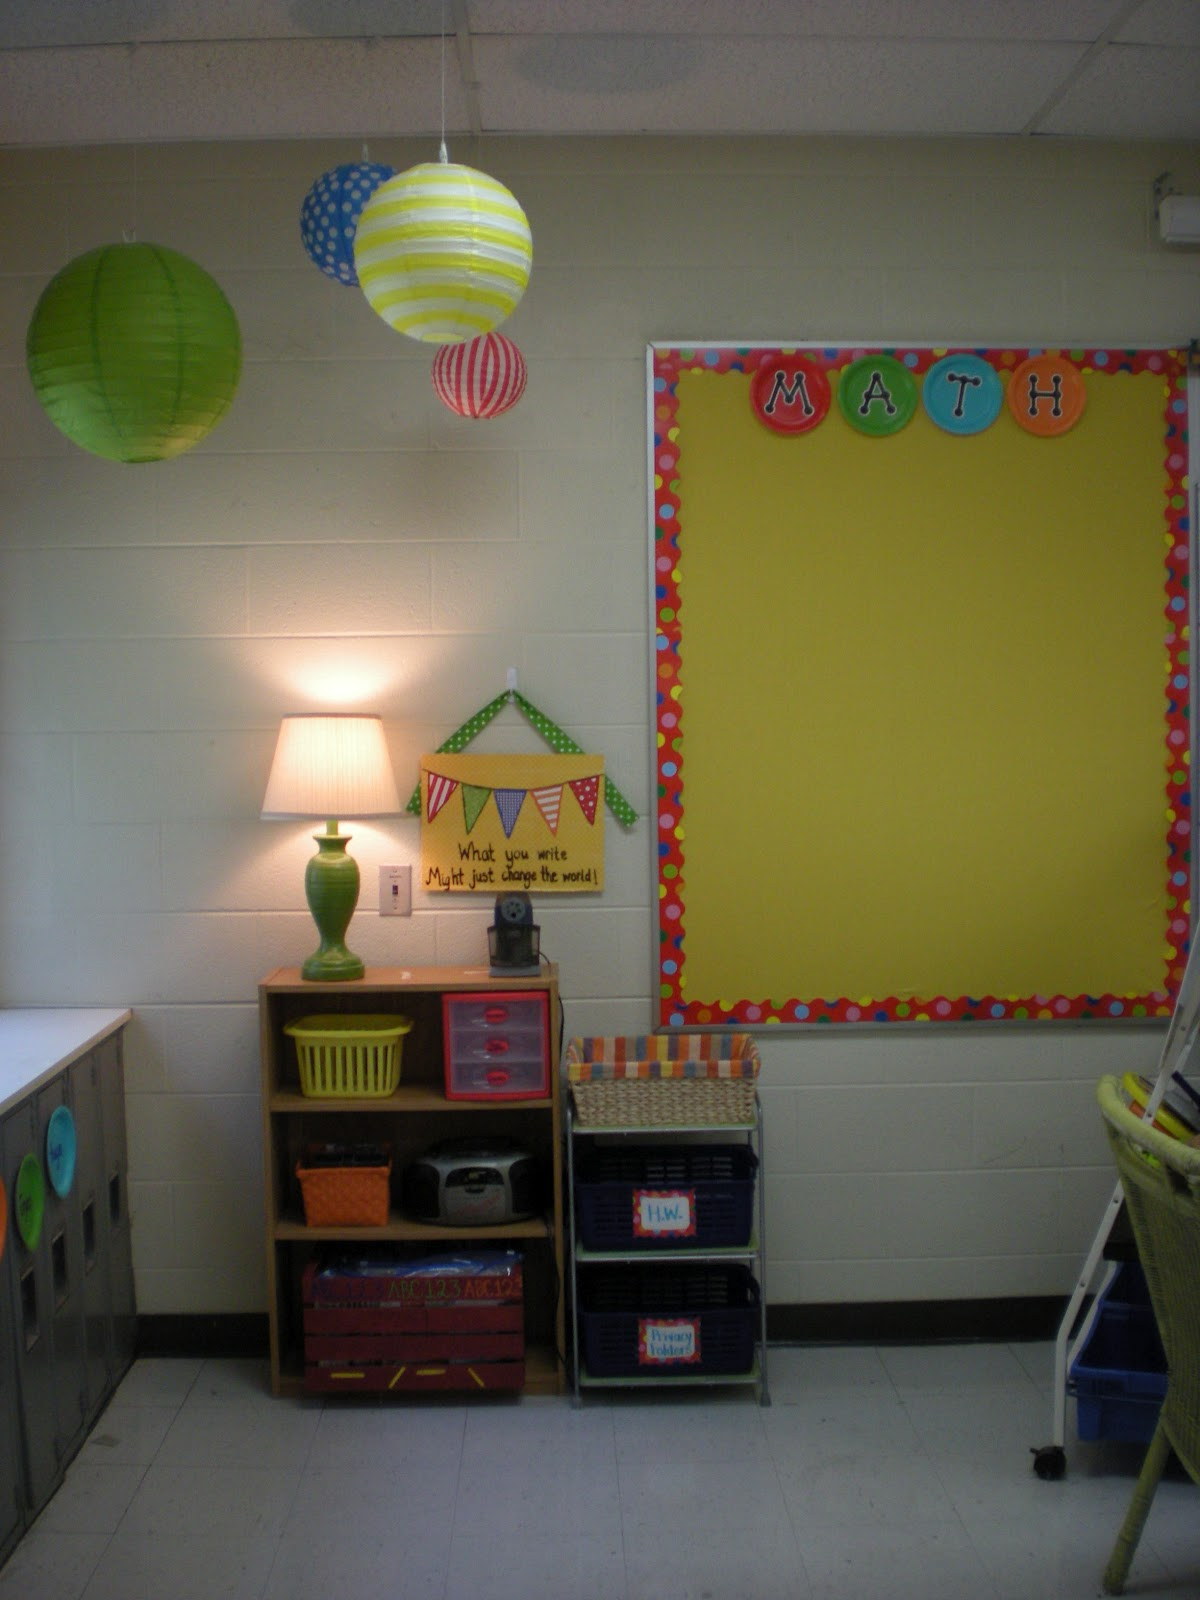 Cool Classroom Wall Decoration Ideas - The Wall Art Decorations ...